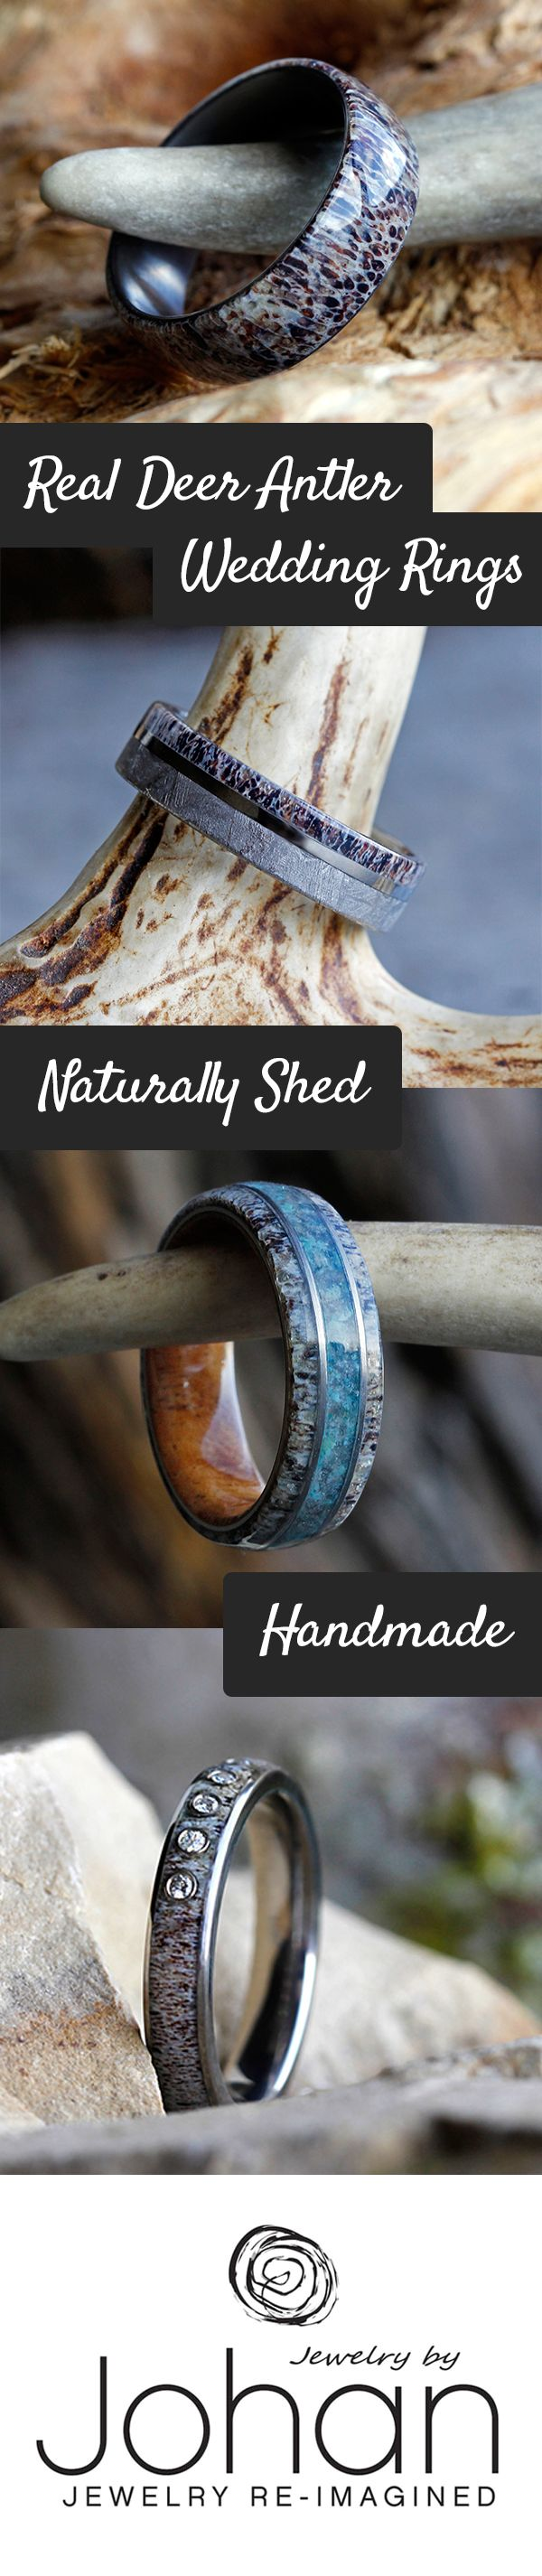 Real Deer Antler Wedding Rings, Wedding Bands, And Antler Engagement Rings  All Handmade